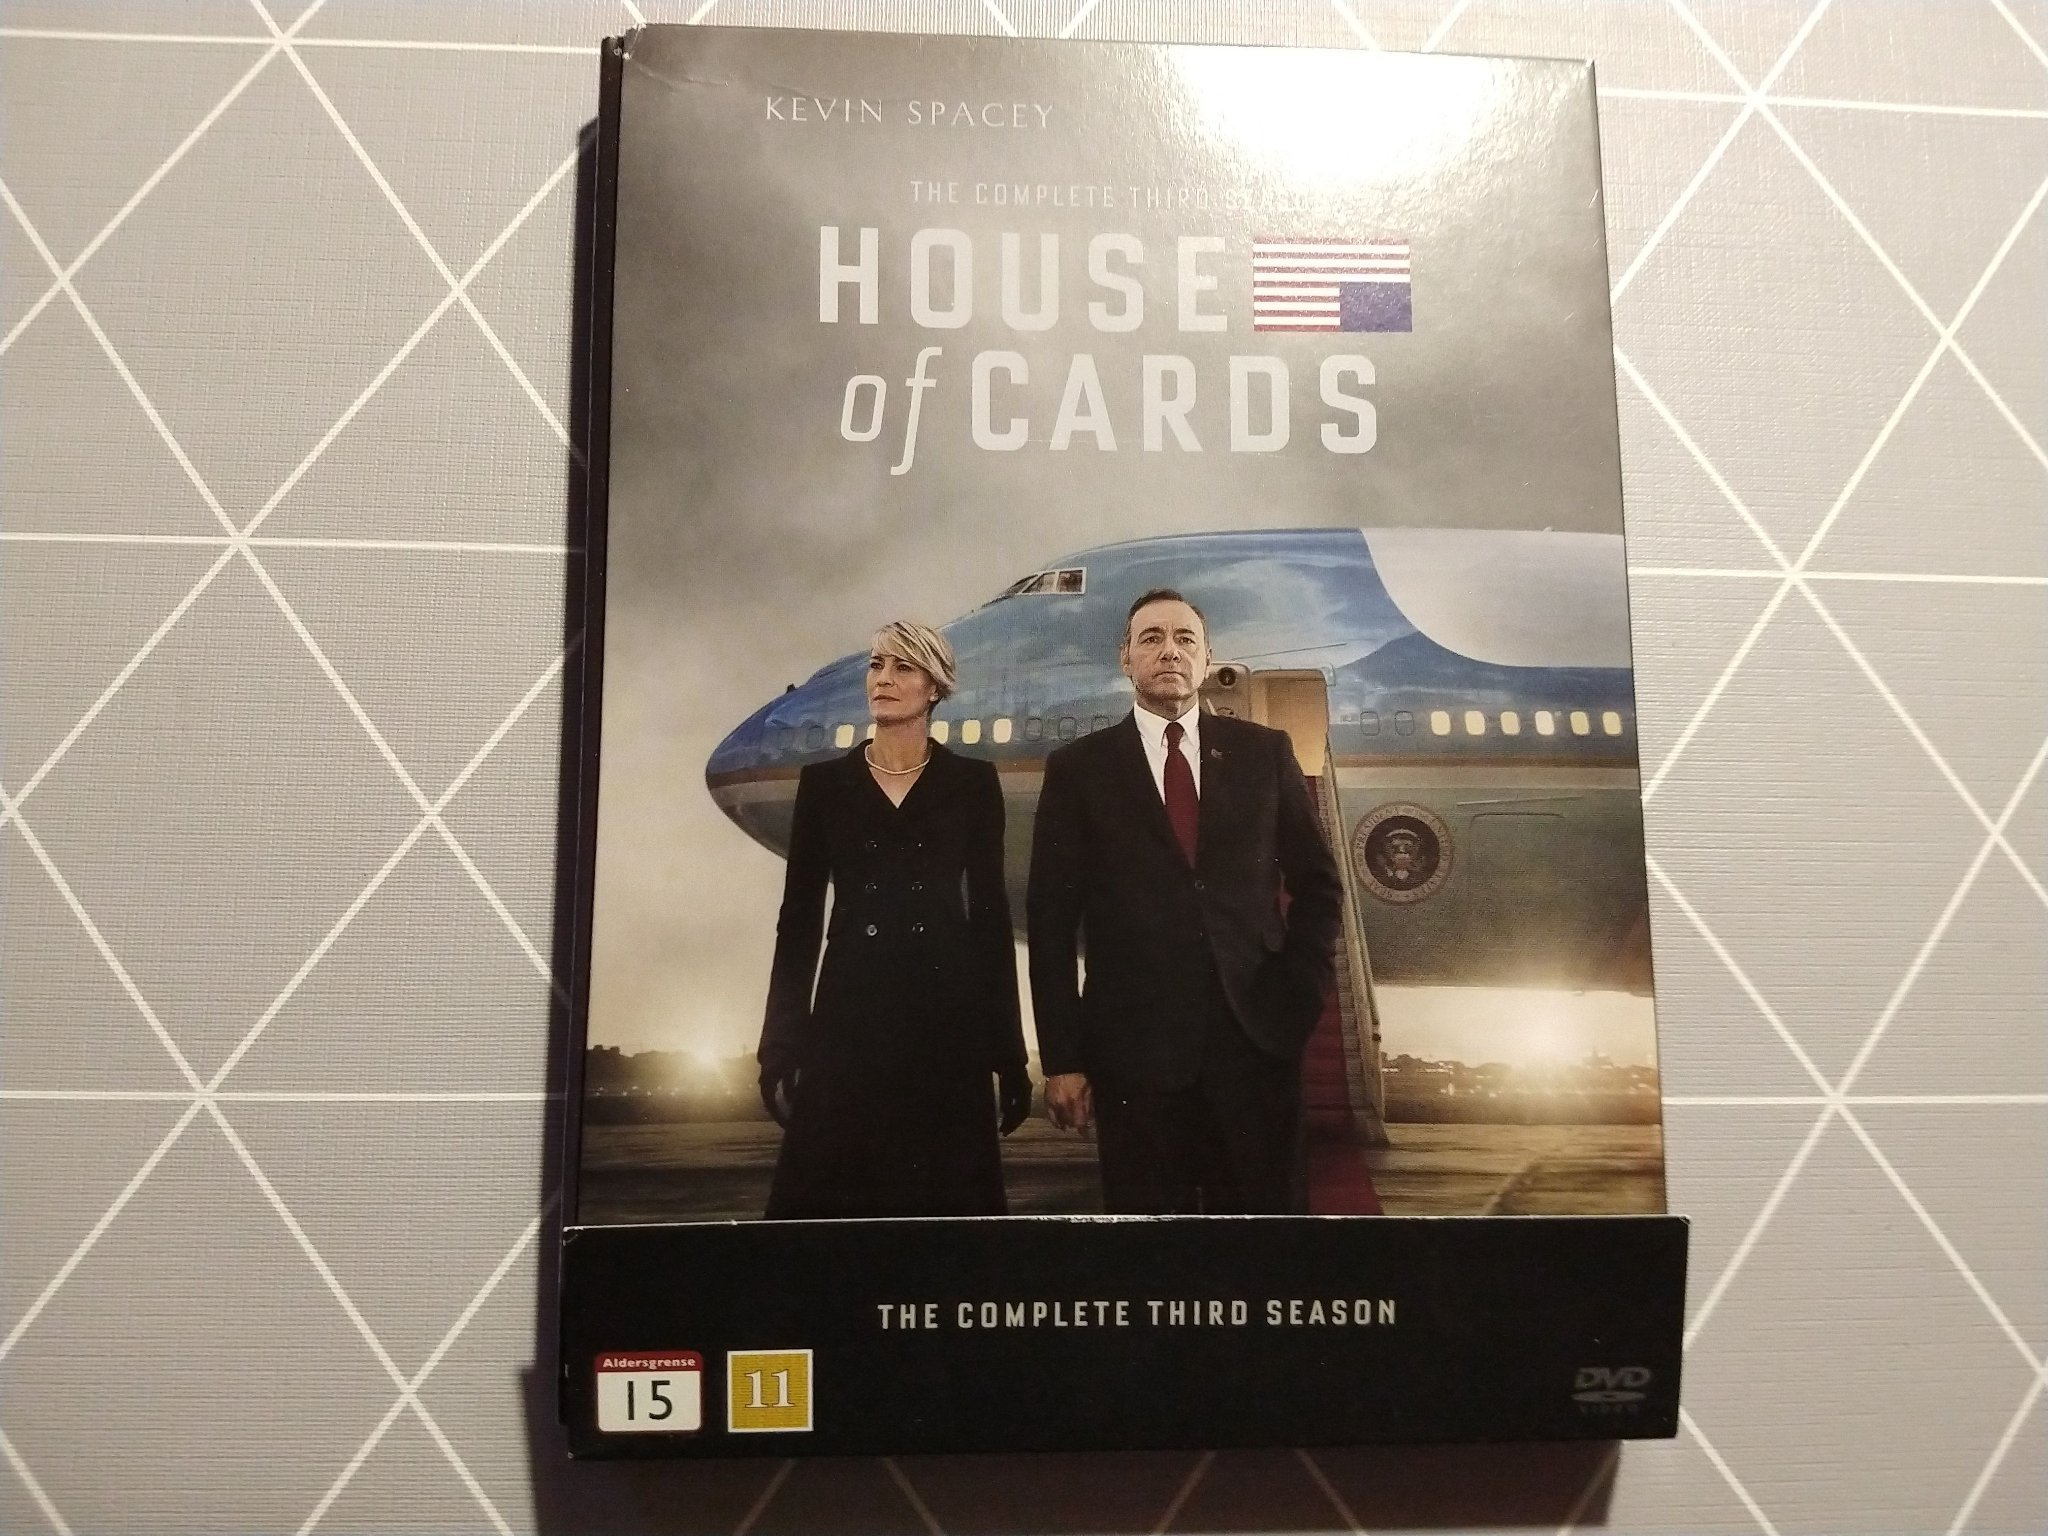 House of cards säsong 3 svensk text